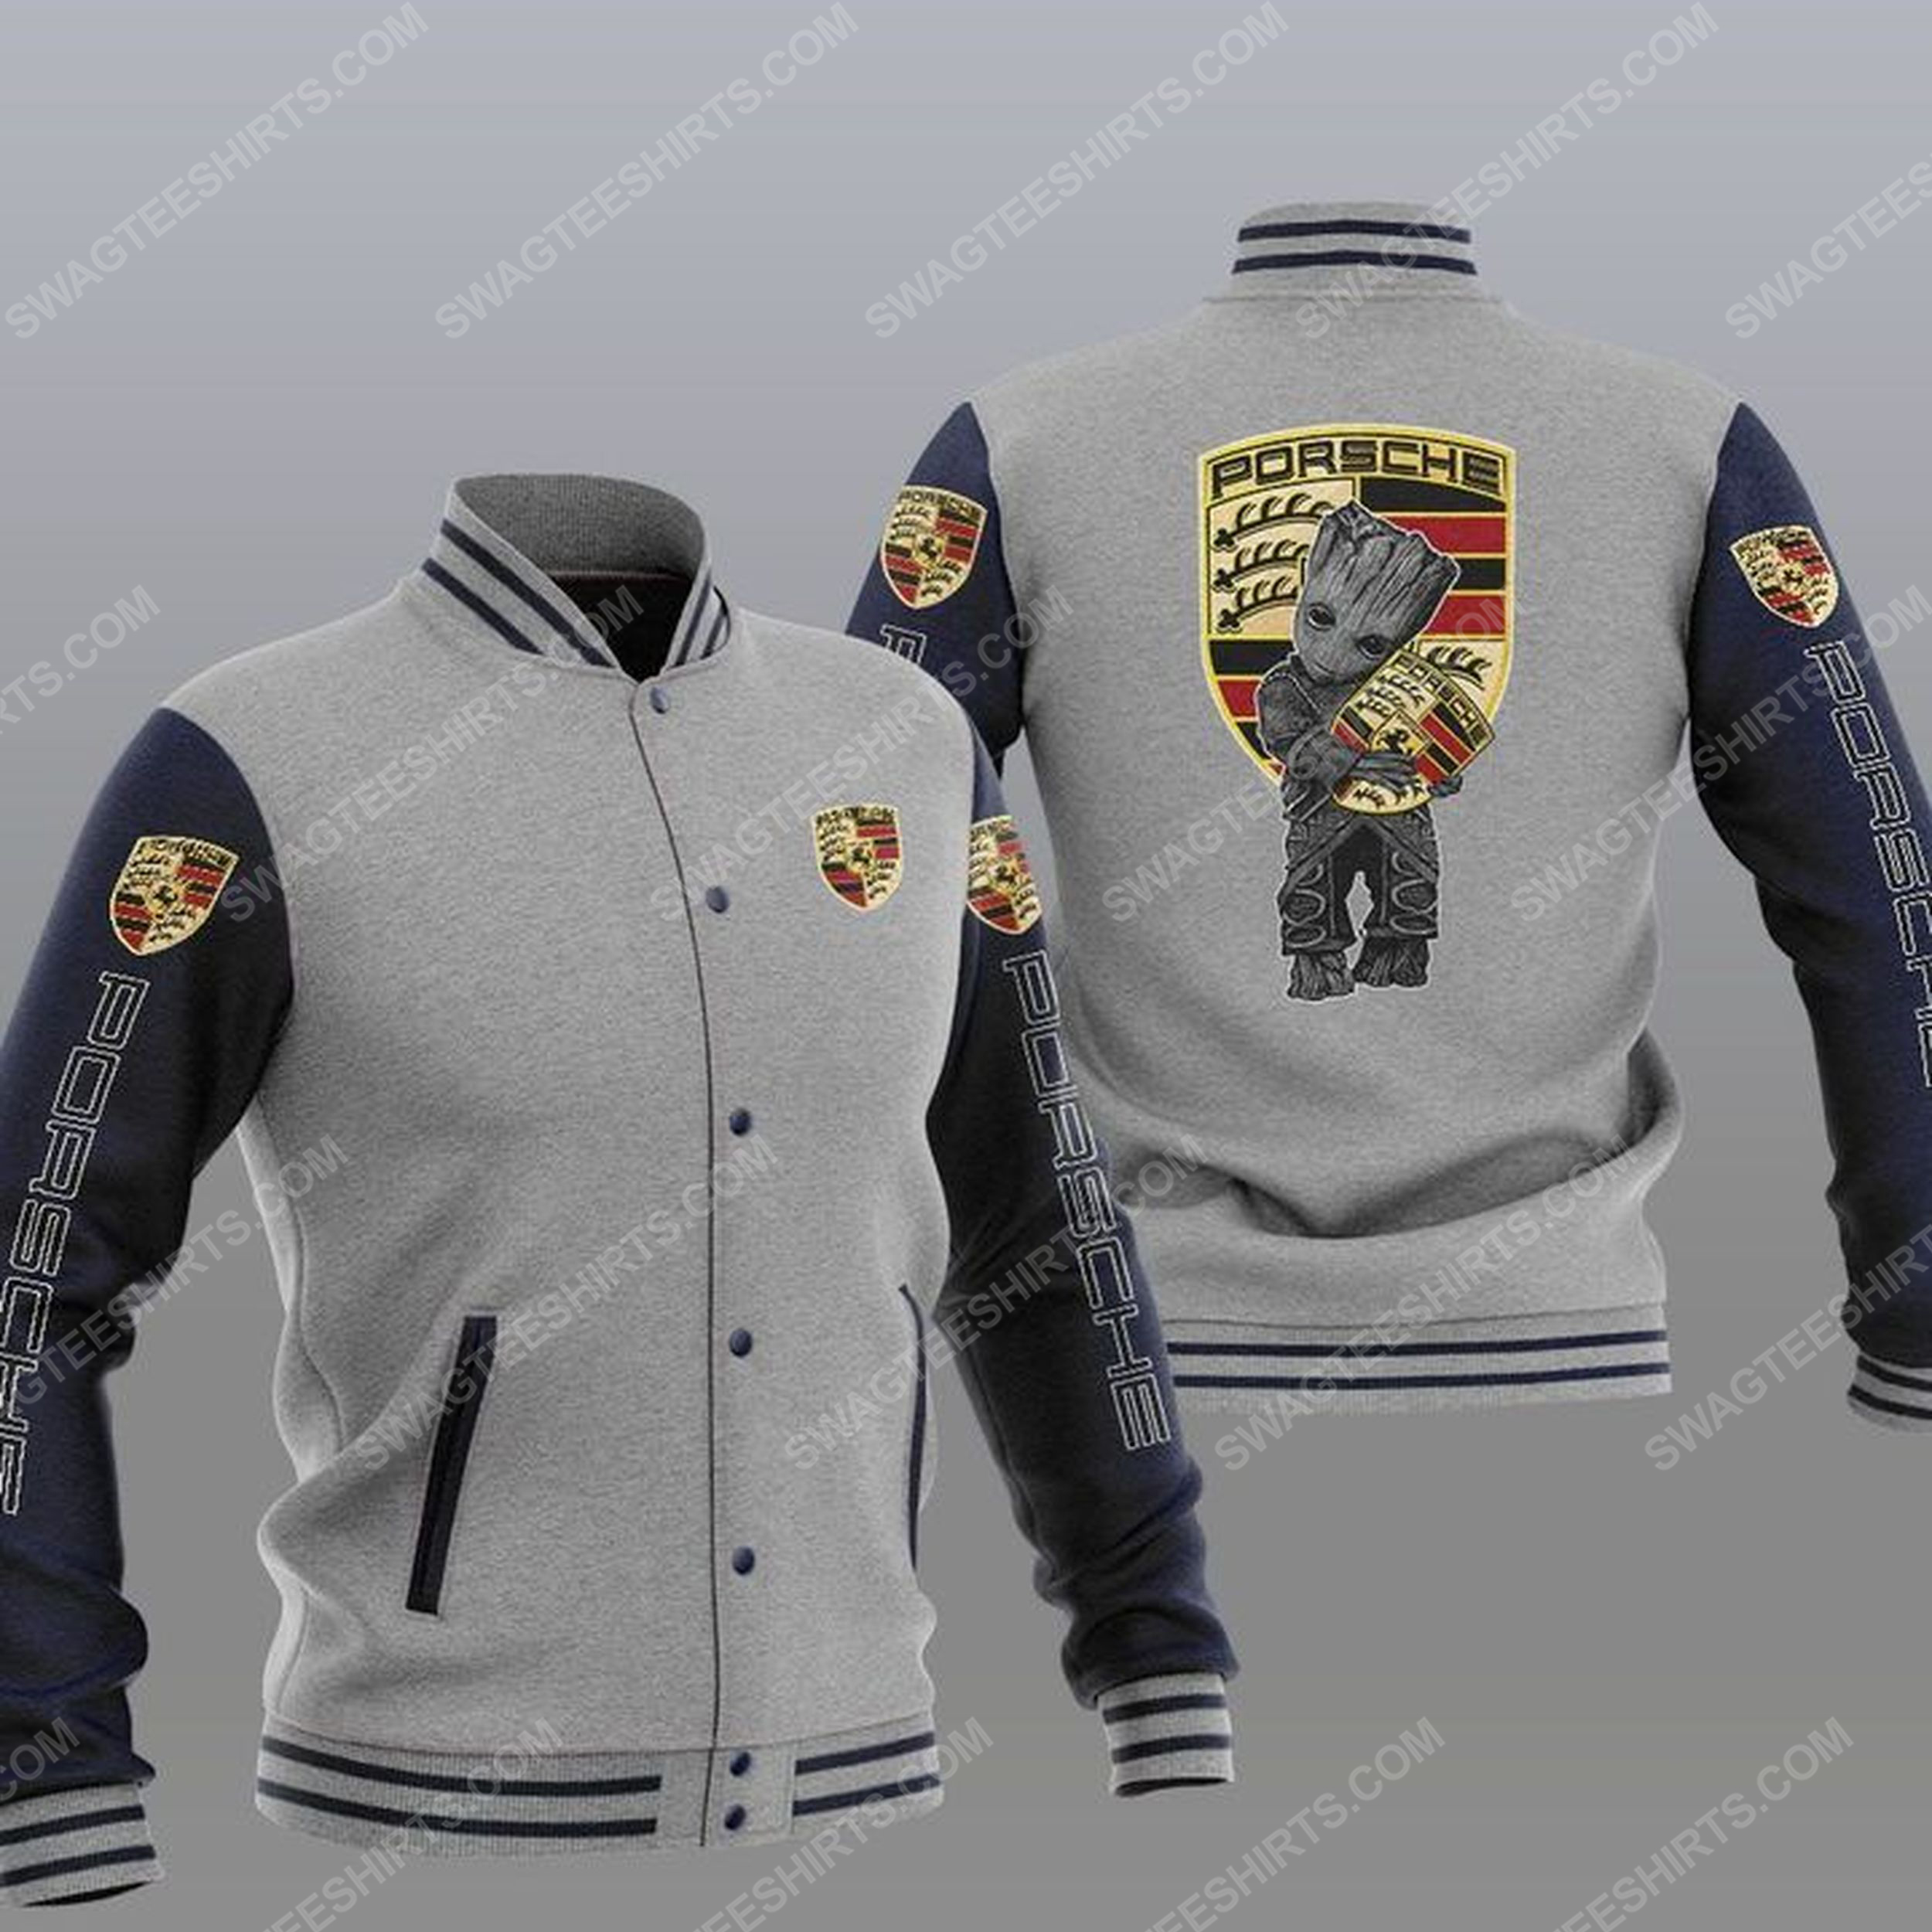 Baby groot and porsche all over print baseball jacket - gray 1